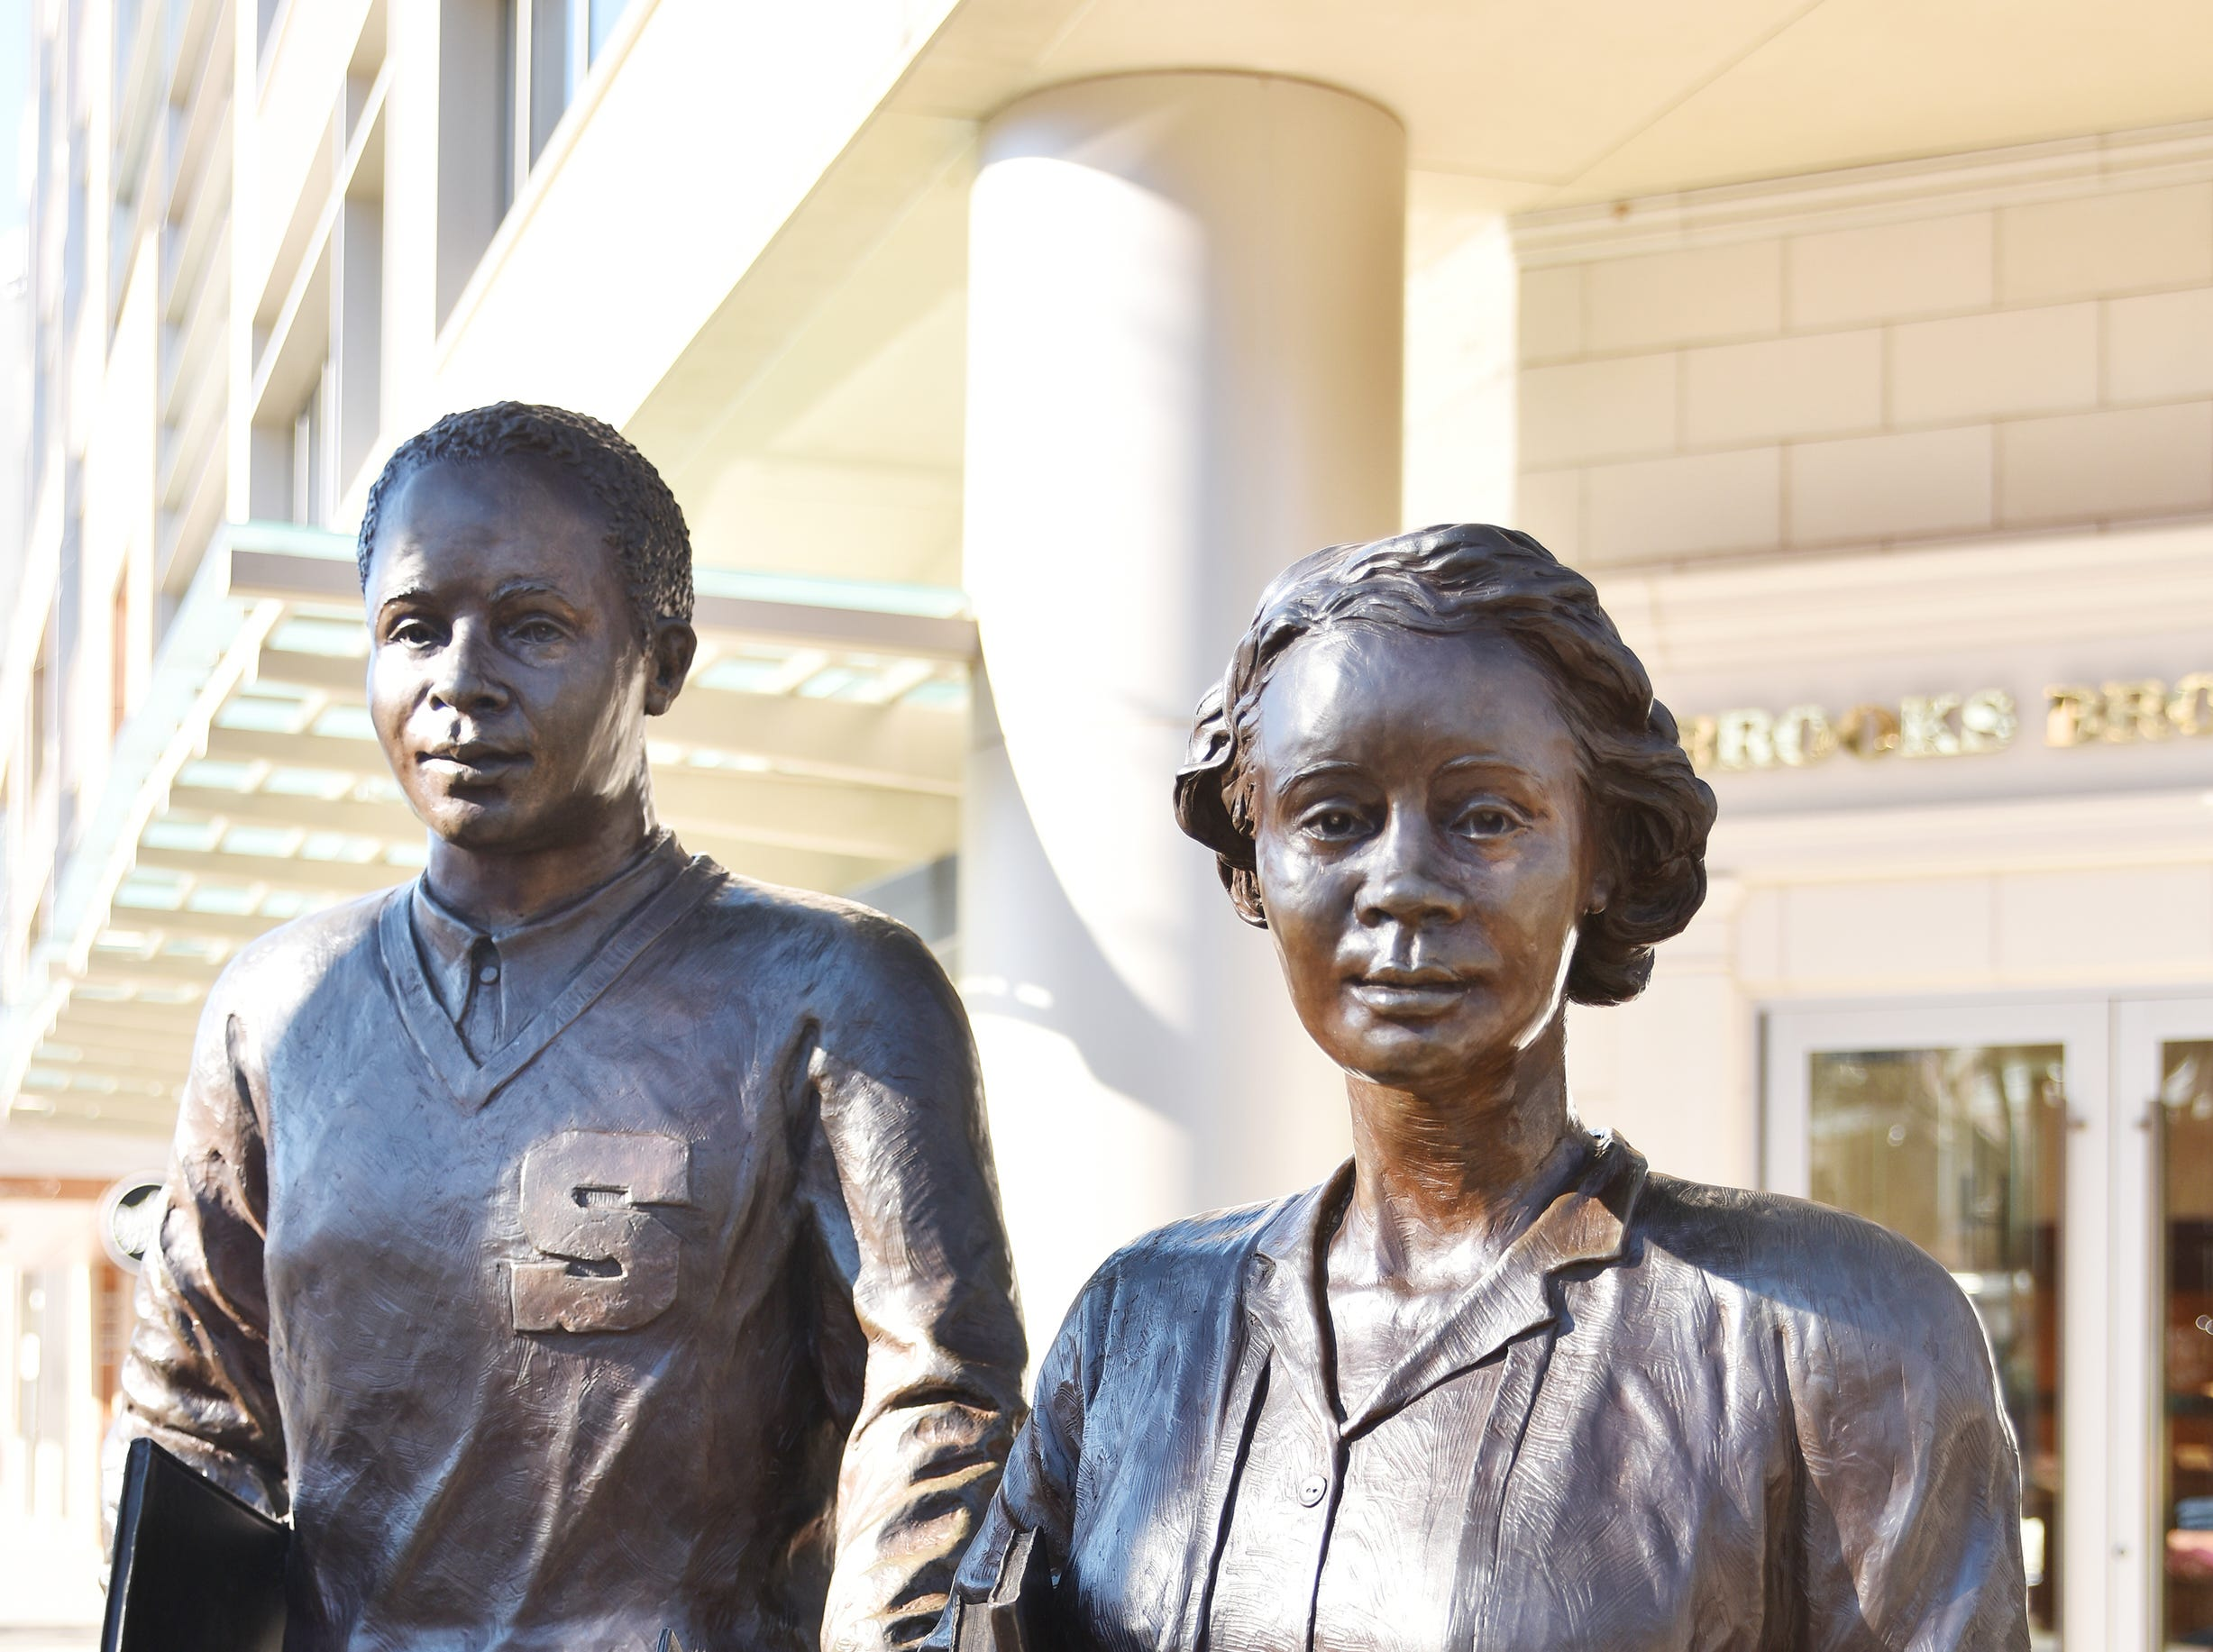 Sterling High School Students by Mariah Kirby-Smith.  Installed in front of the former Woolworth building where Sterling students held sit-ins and protests during the civil rights movement, this bronze sculpture depicts two students proudly descending the steps of Sterling High School.